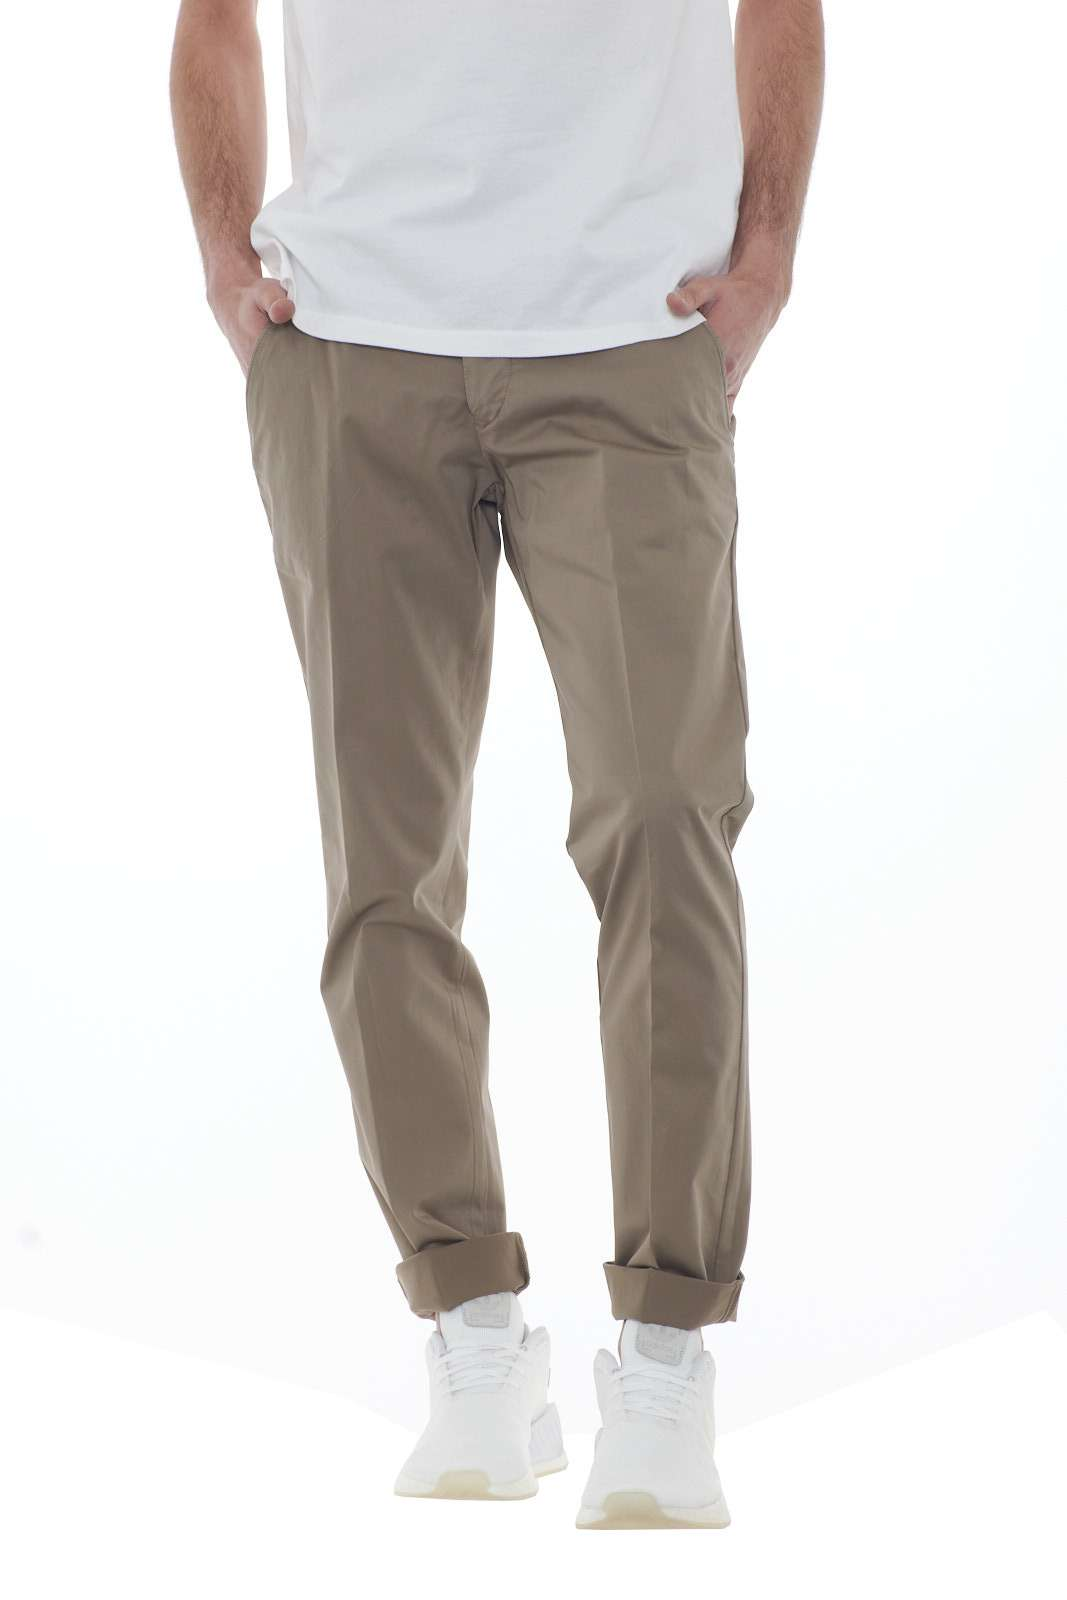 https://www.parmax.com/media/catalog/product/a/i/PE-outlet_parmax-pantaloni-uomo-Desica-POSITANORASO-A.jpg